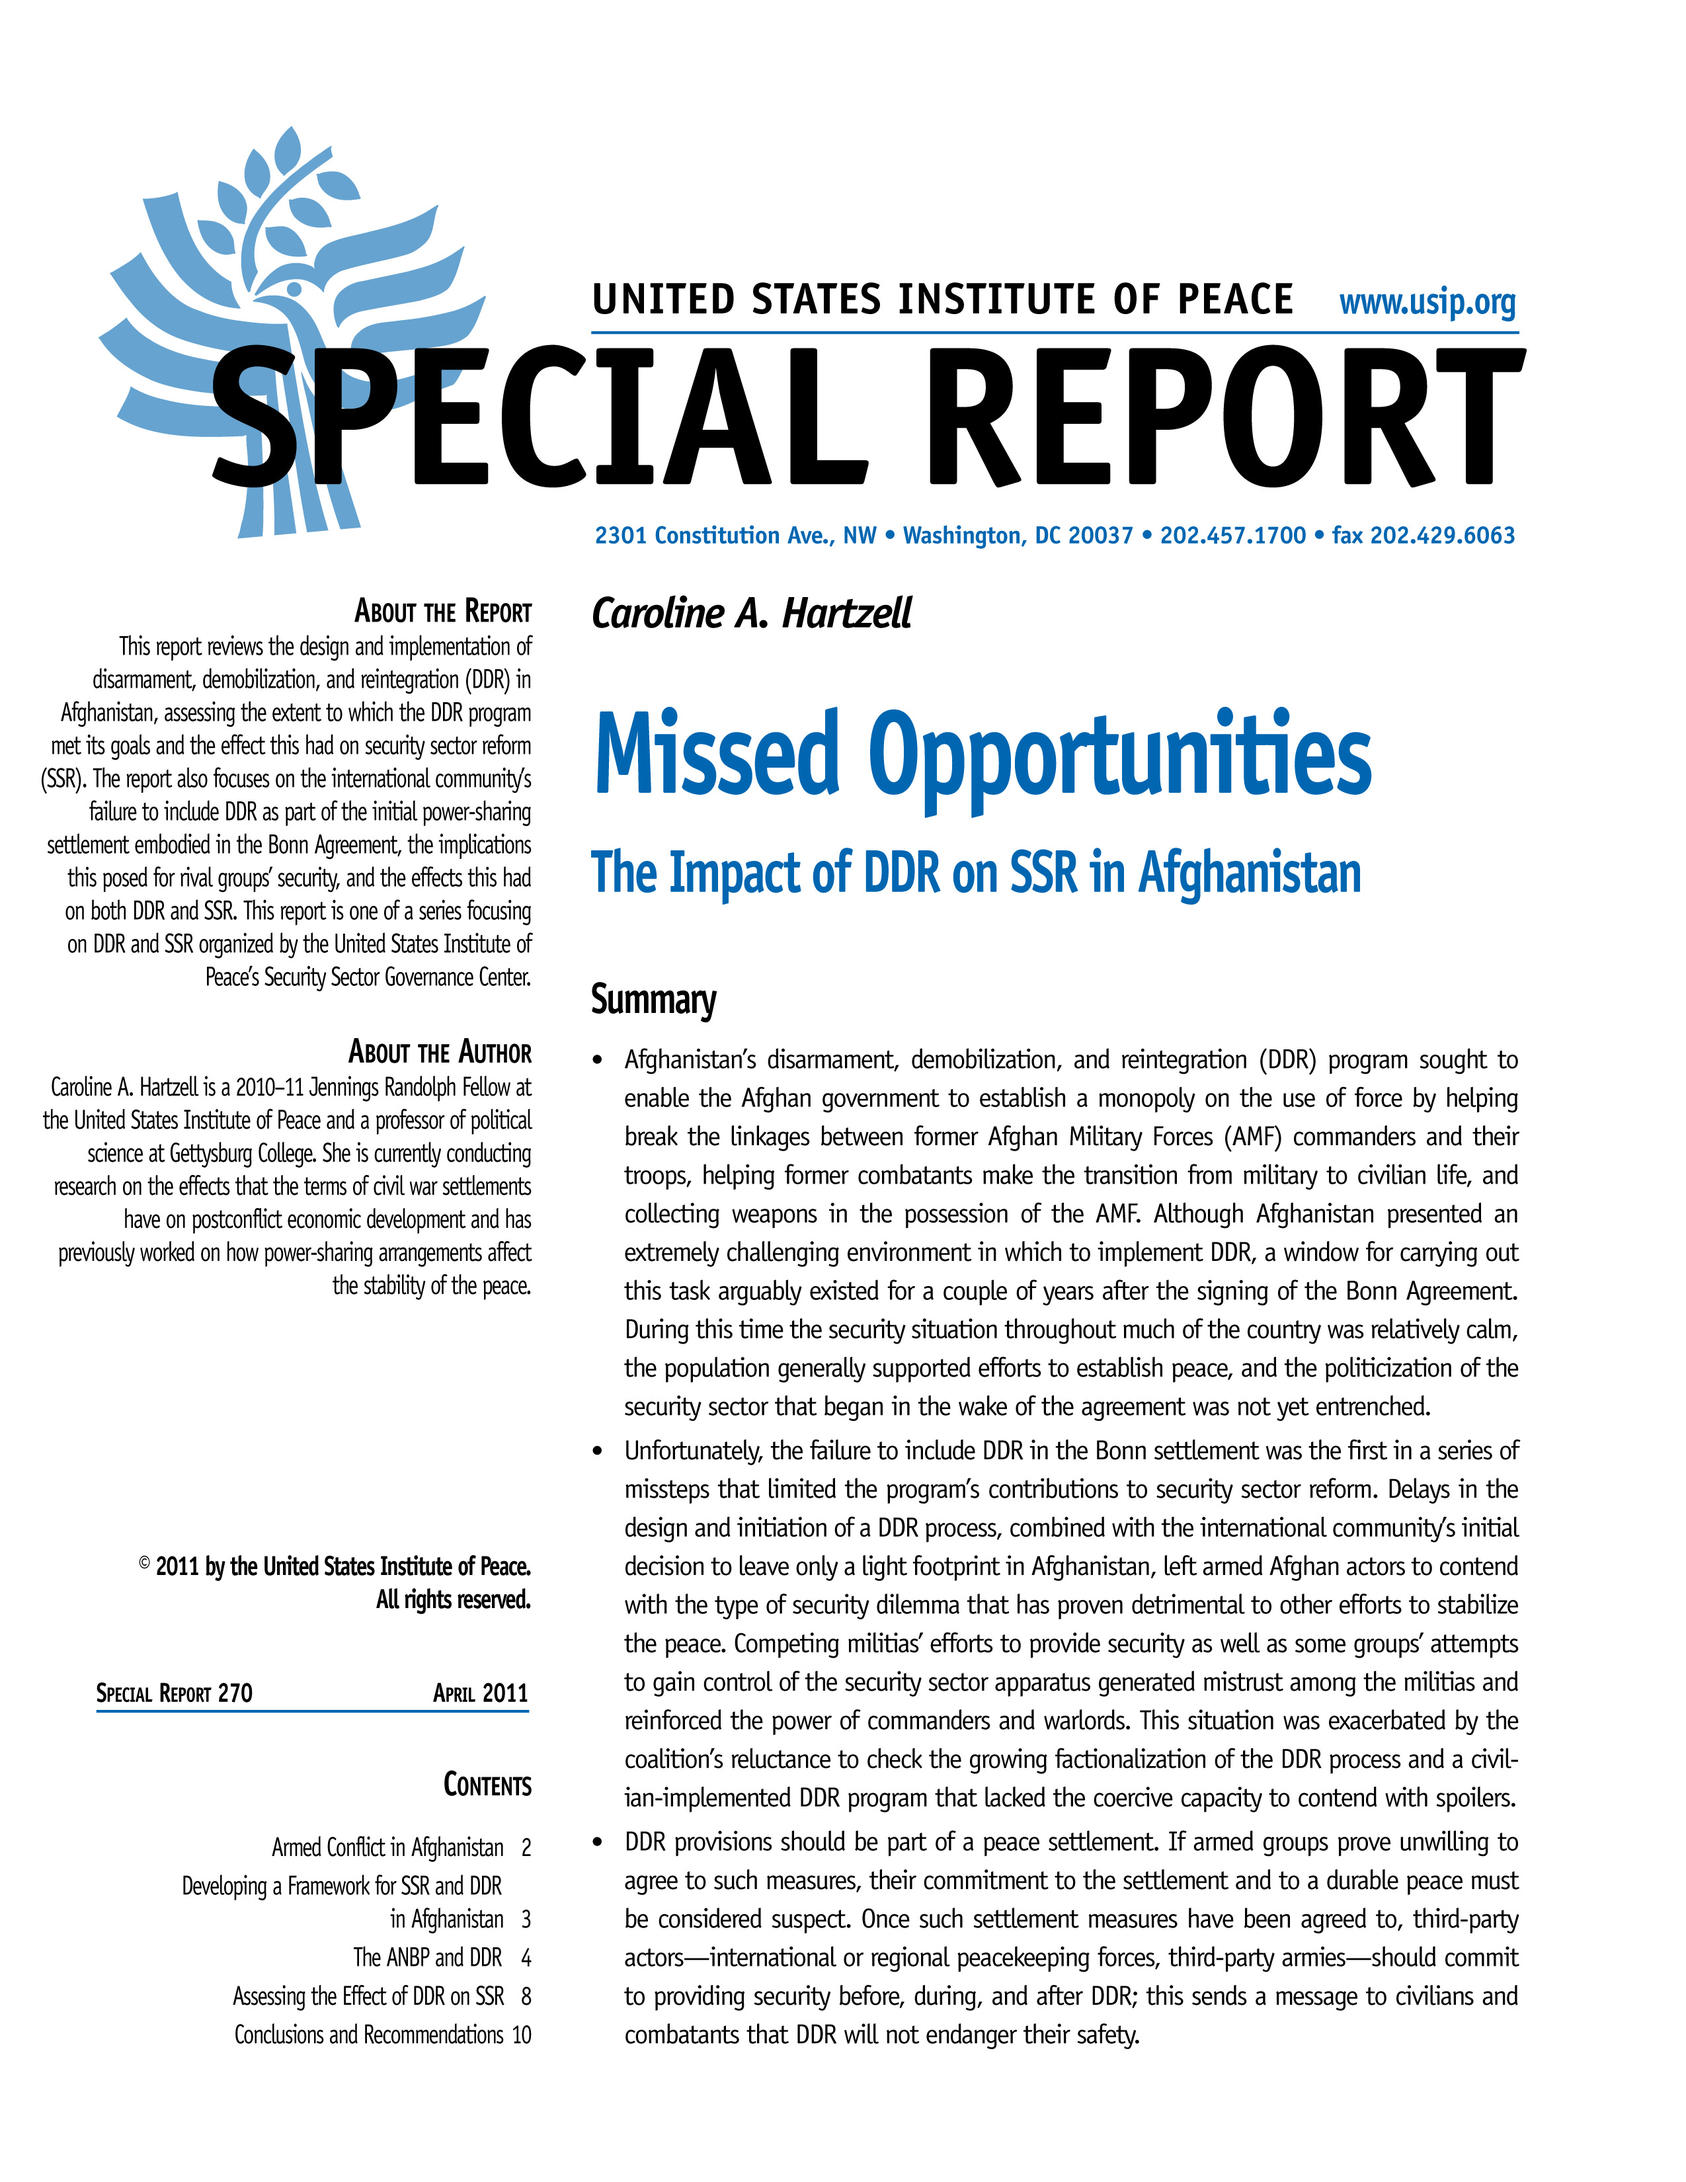 Missed Opportunities | United States Institute of Peace